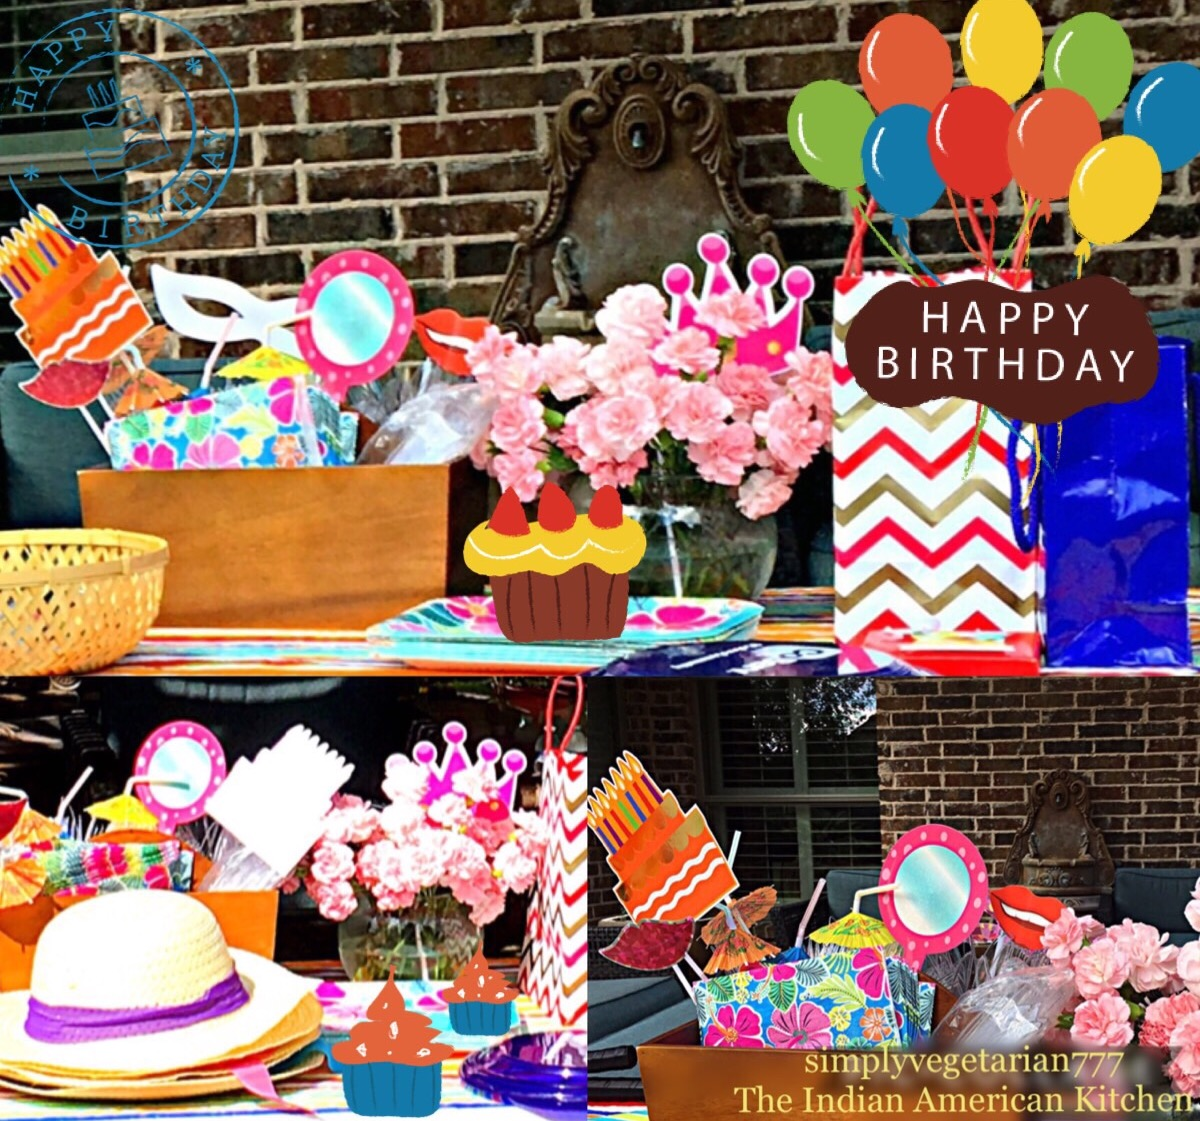 13 Year Old Girls Birthday Party Idea at Home in the Budget